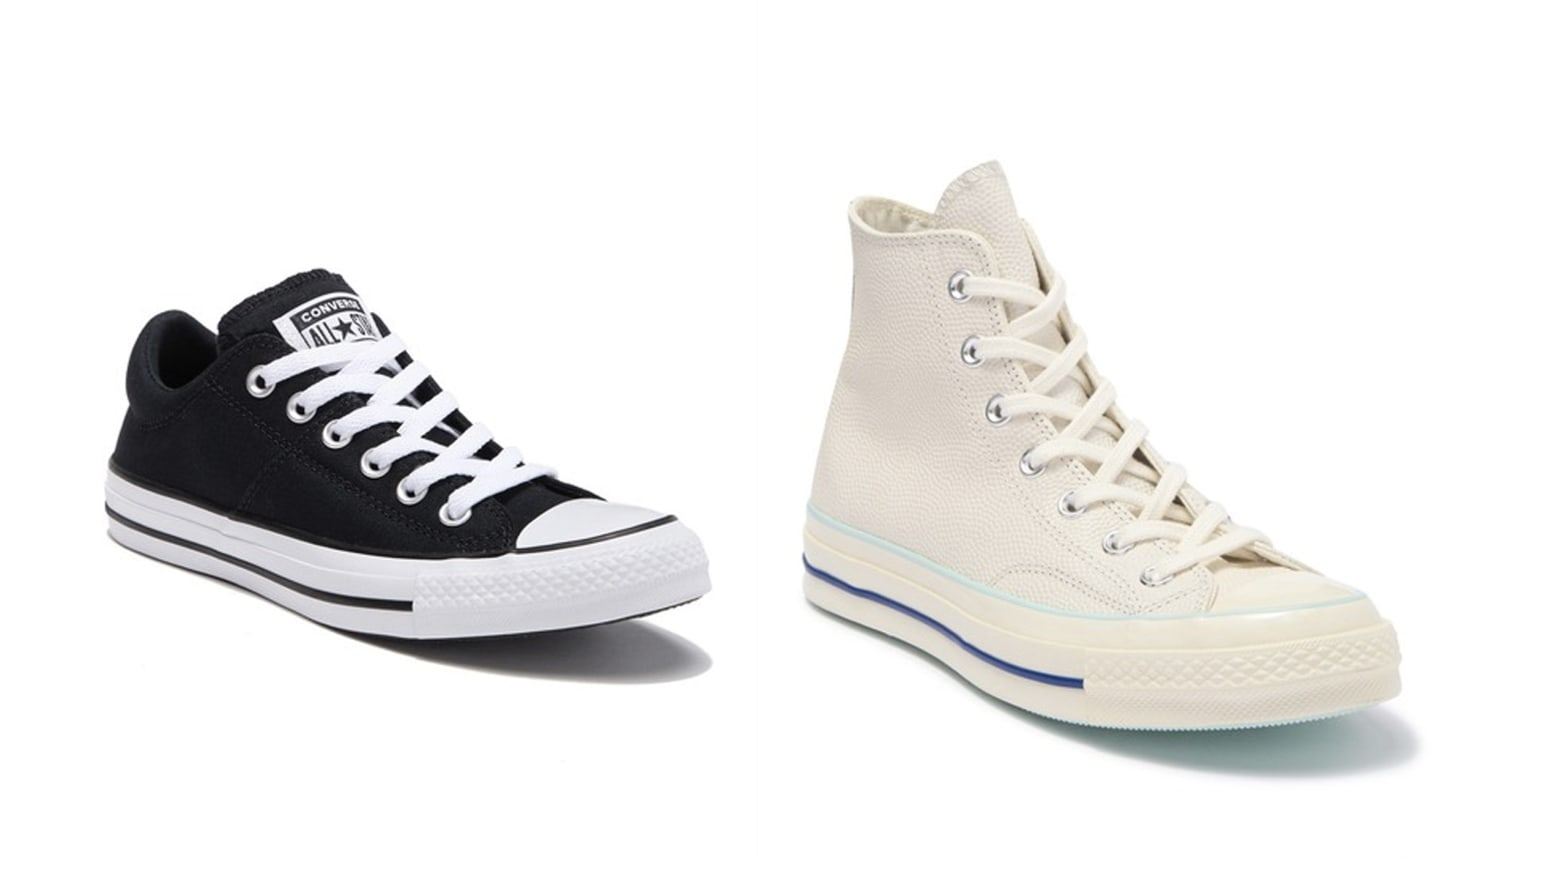 Classic Converse Styles are Up to 55% Off at Nordstrom Rack